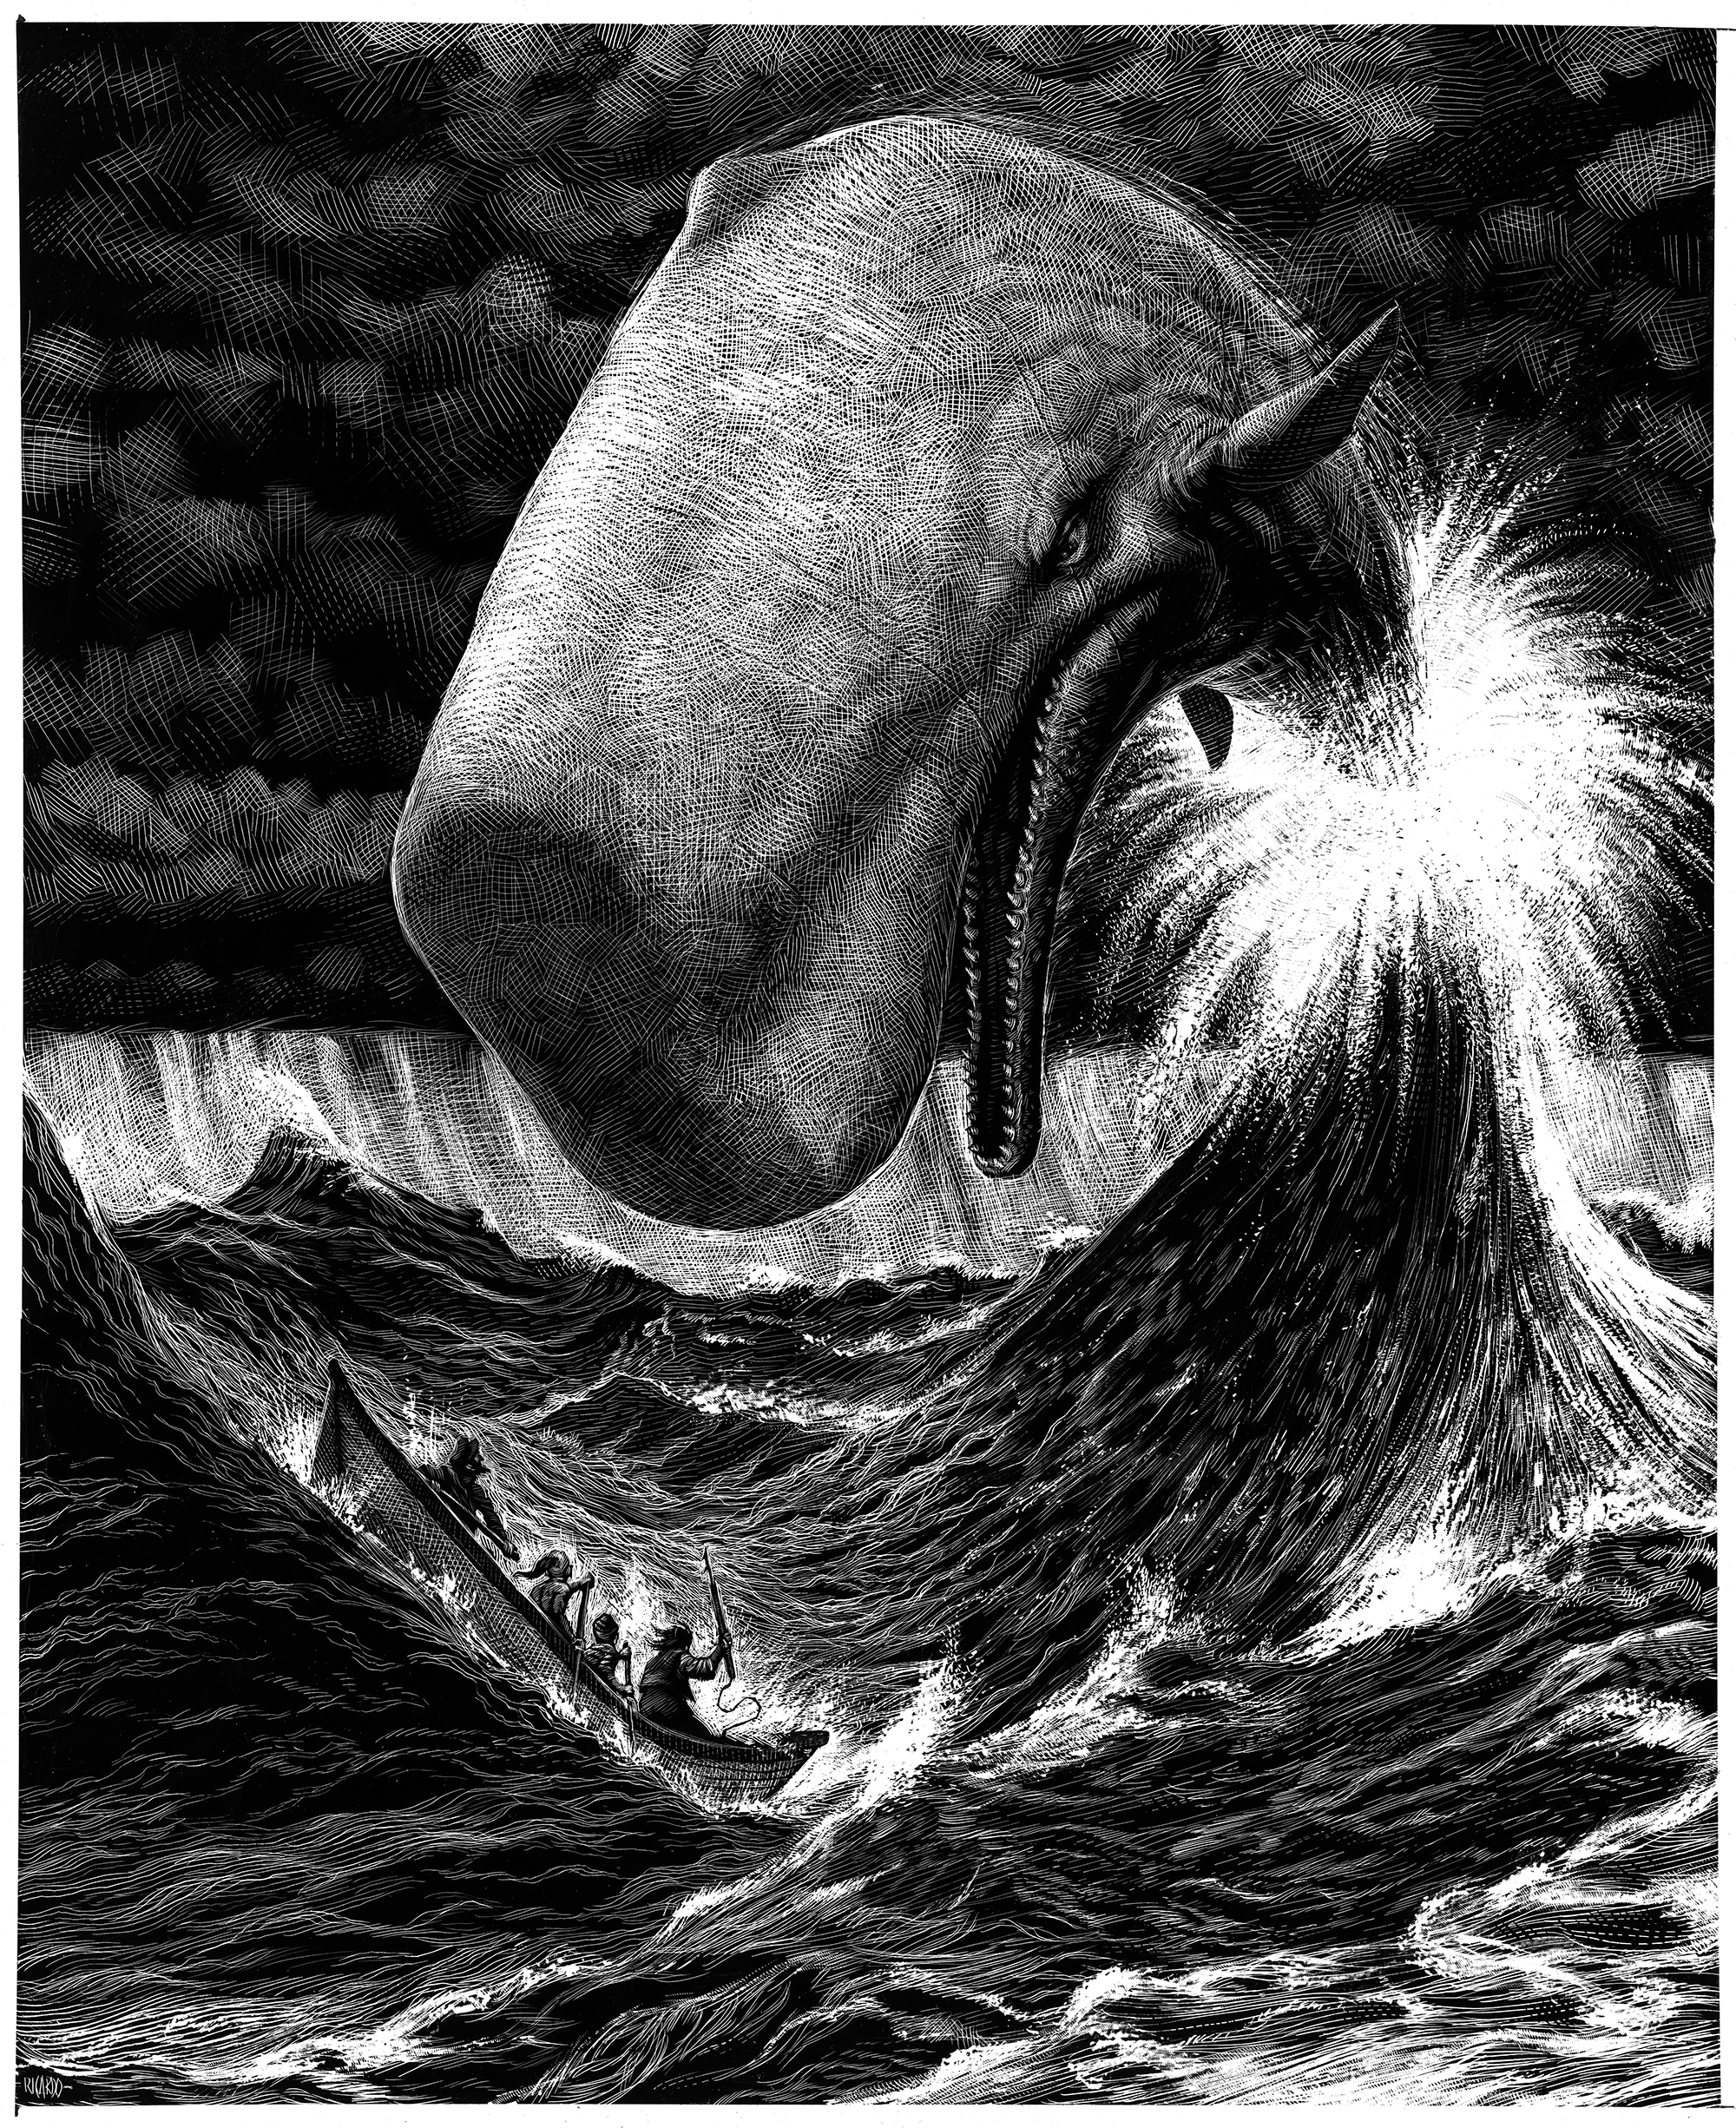 photoshoptutorials moby dick copia Moby Dick moby dick illustration Art